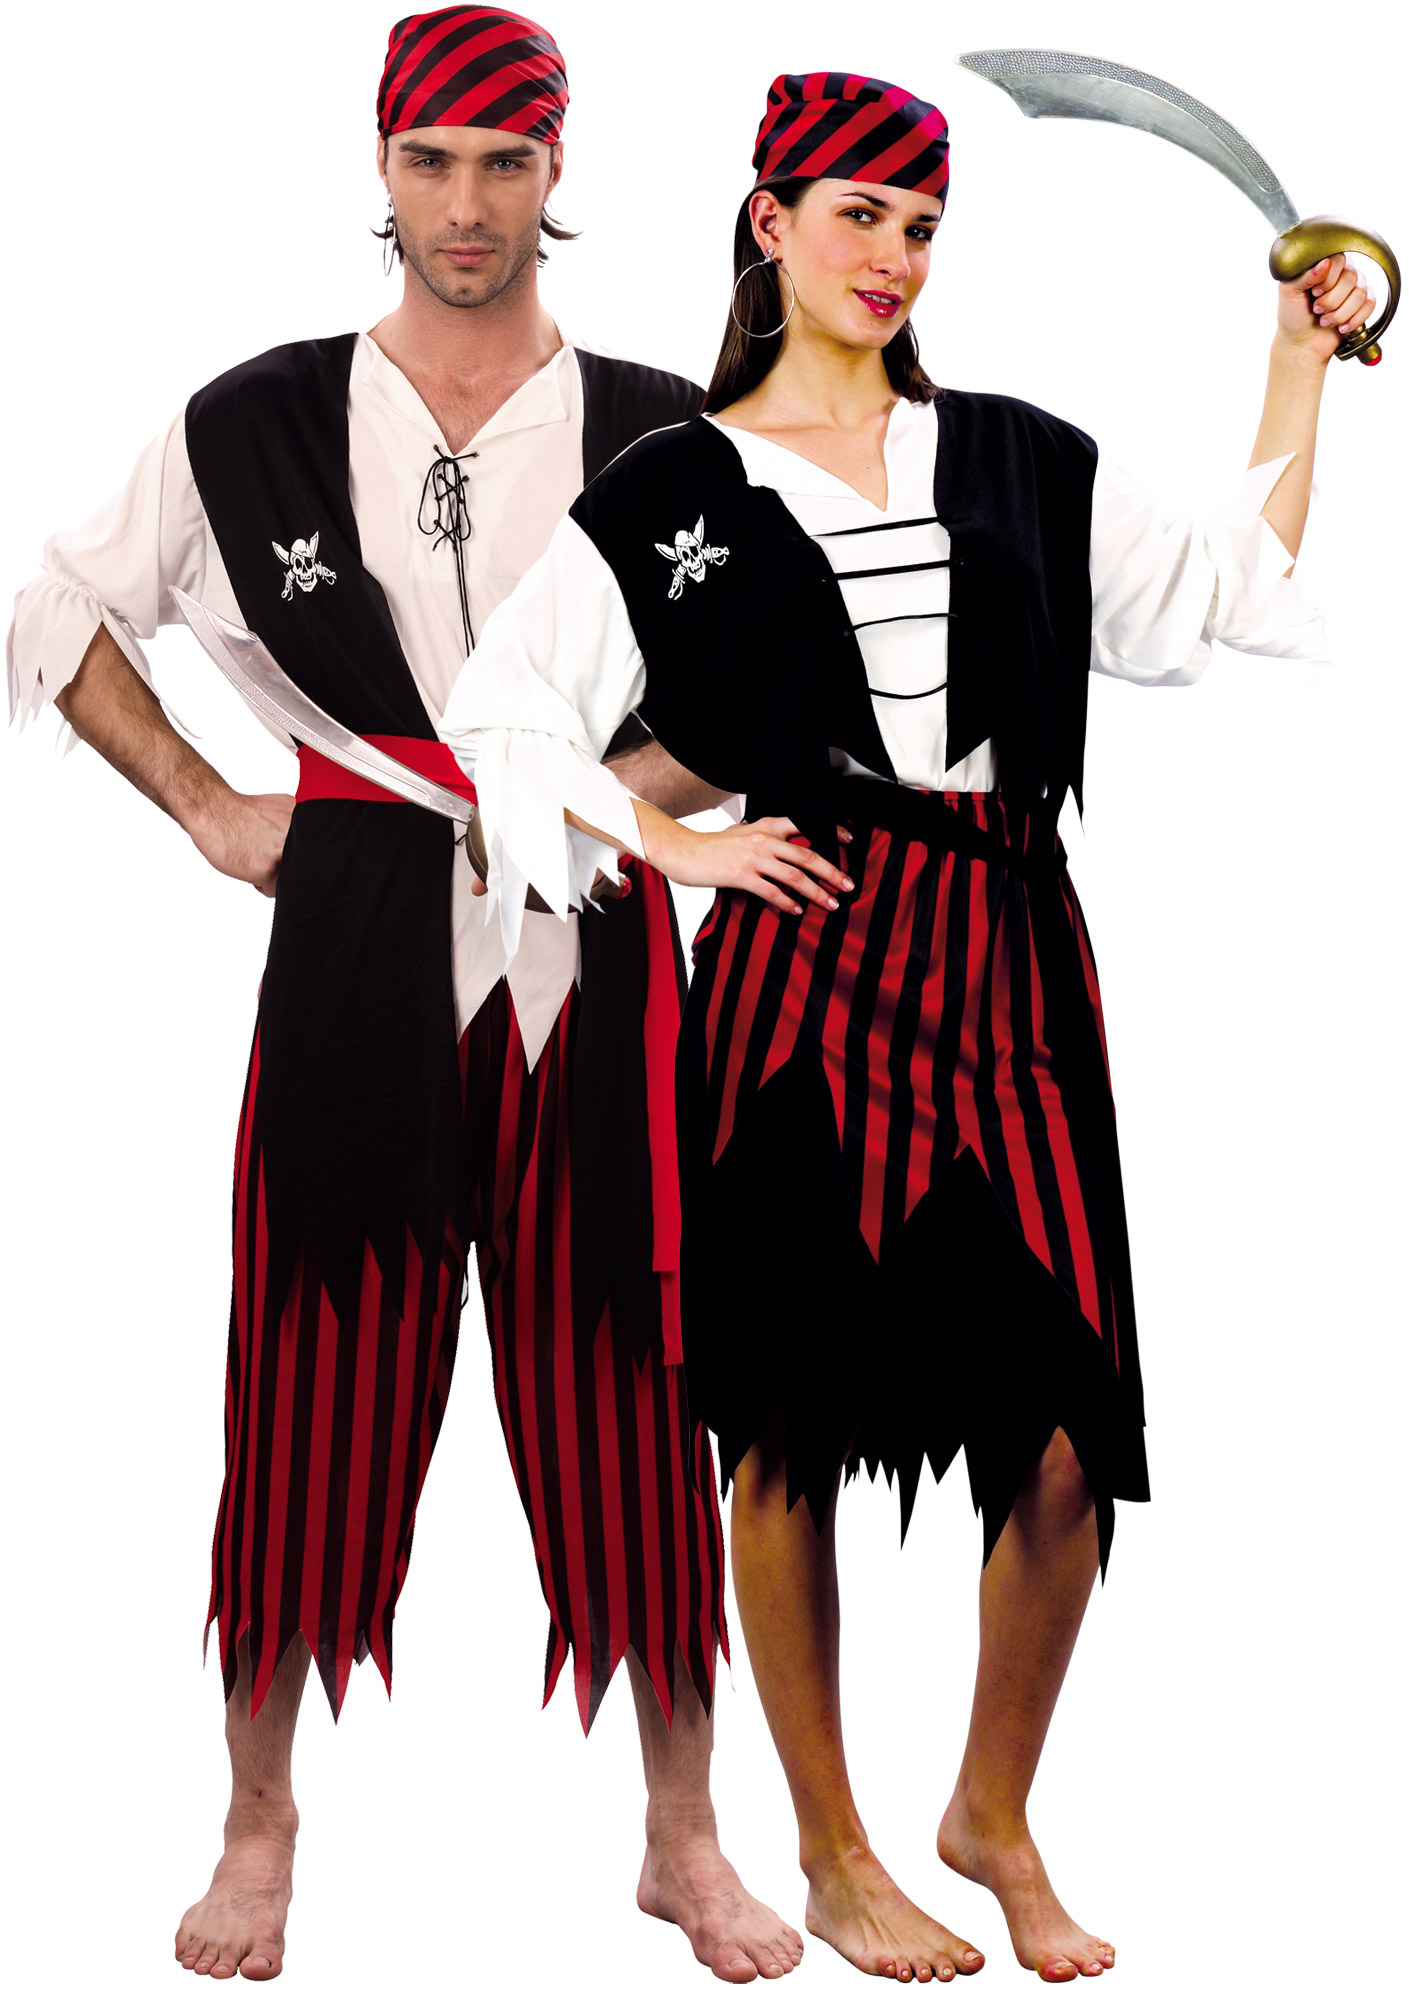 d guisement couple de pirates d guisement couple pas cher costume carnaval. Black Bedroom Furniture Sets. Home Design Ideas